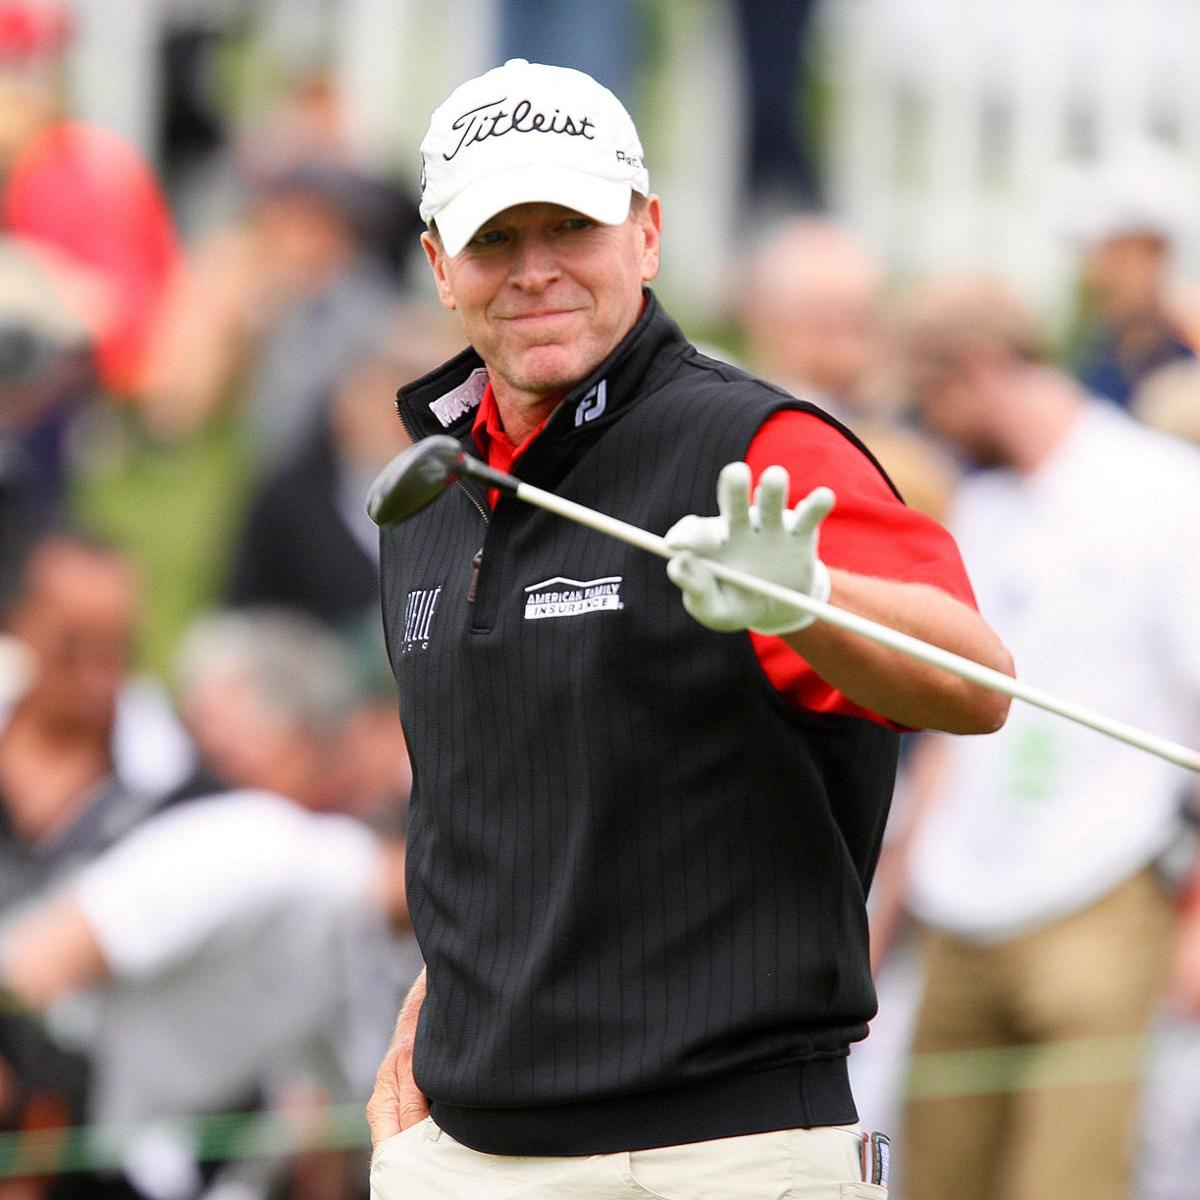 After chasing U.S. Open berth and Presidents Cup triumph, Steve Stricker opts to skip Charles Schwab Cup Playoffs